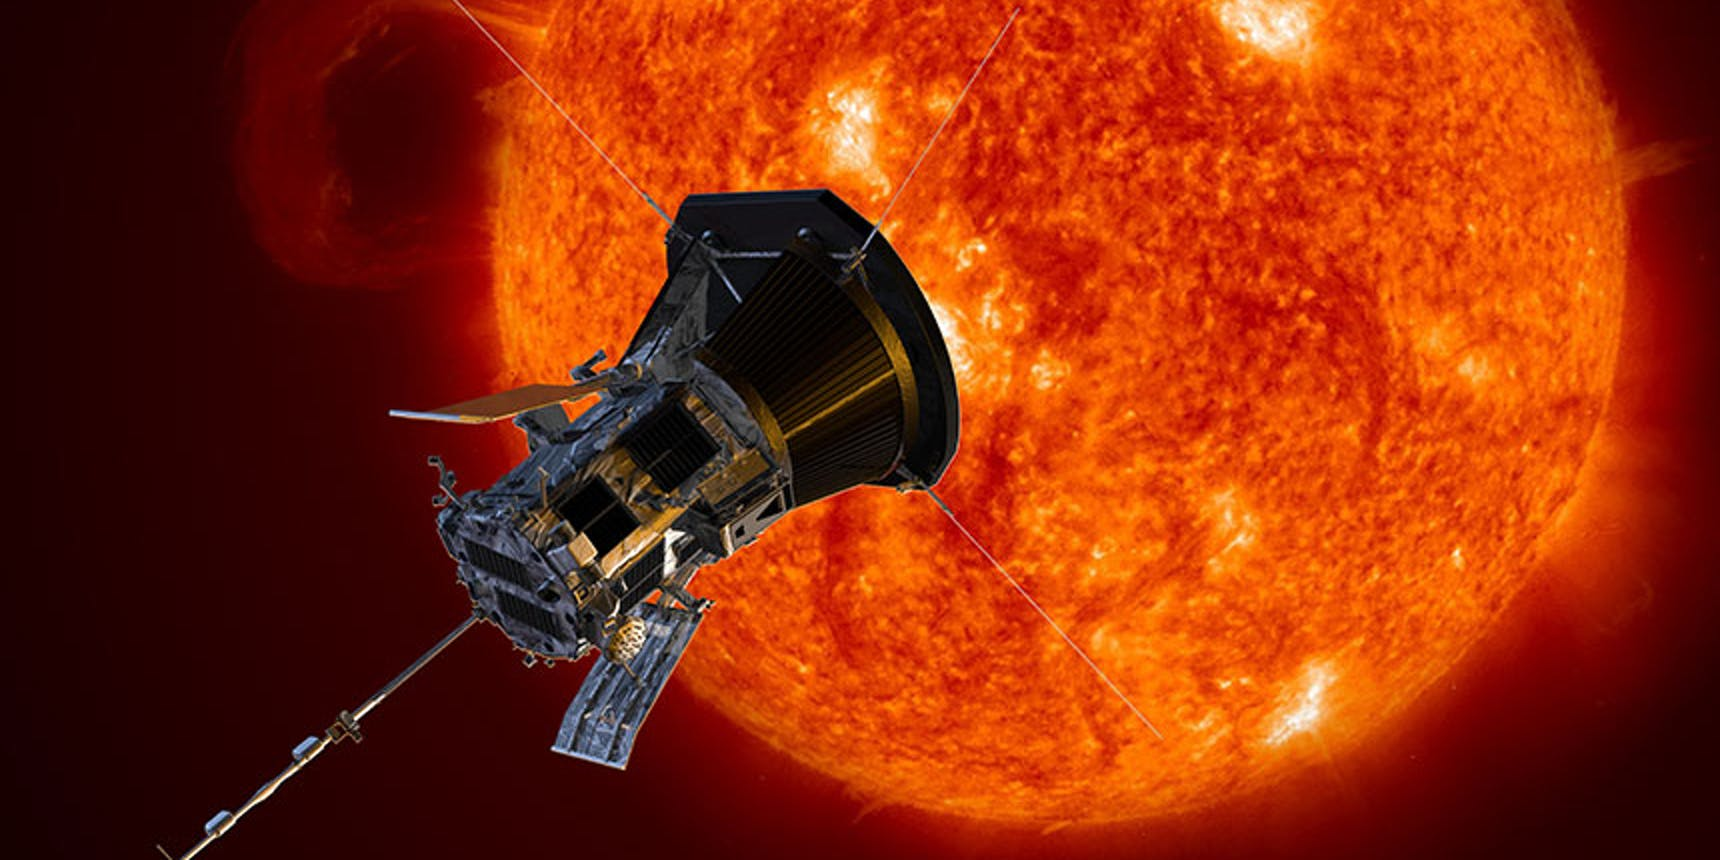 The Parker Solar Probe